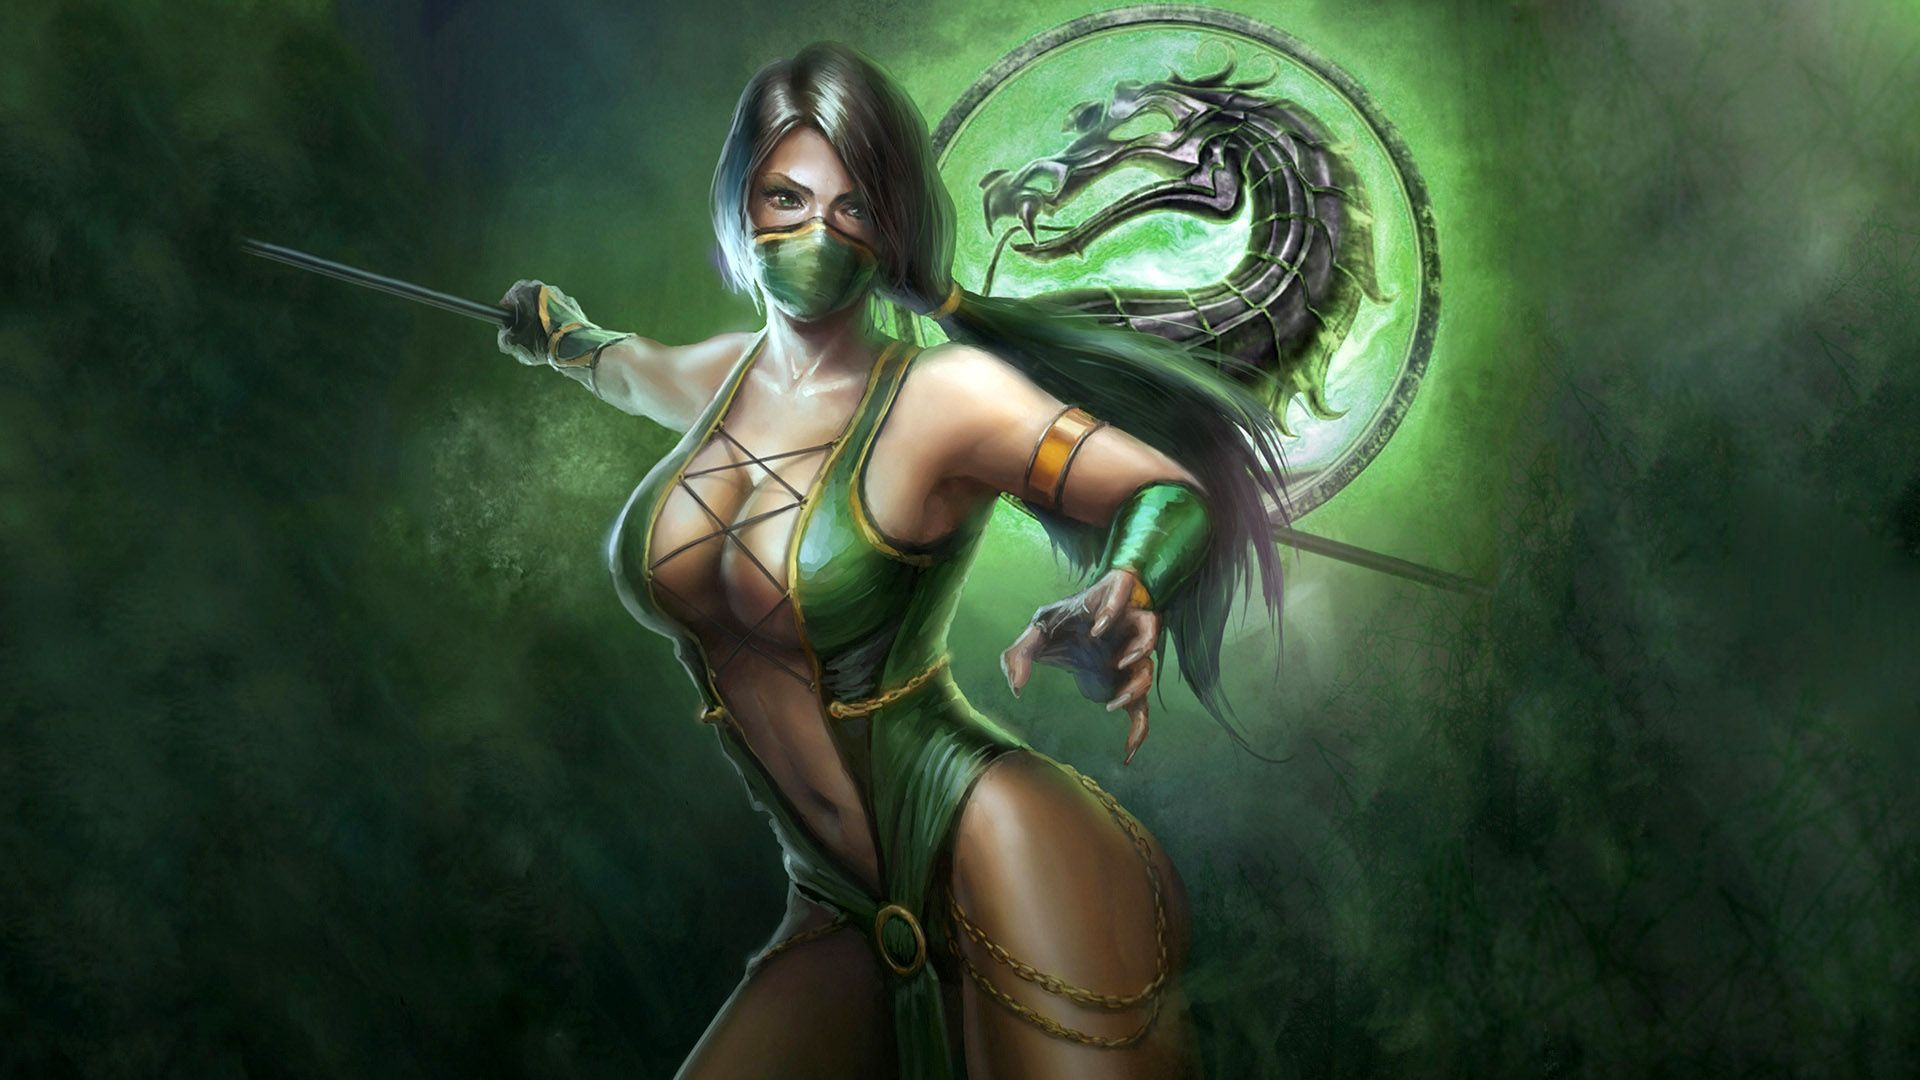 Jade Mortal Kombat X Wallpaper Games Mortal Kombat Jade Mortal